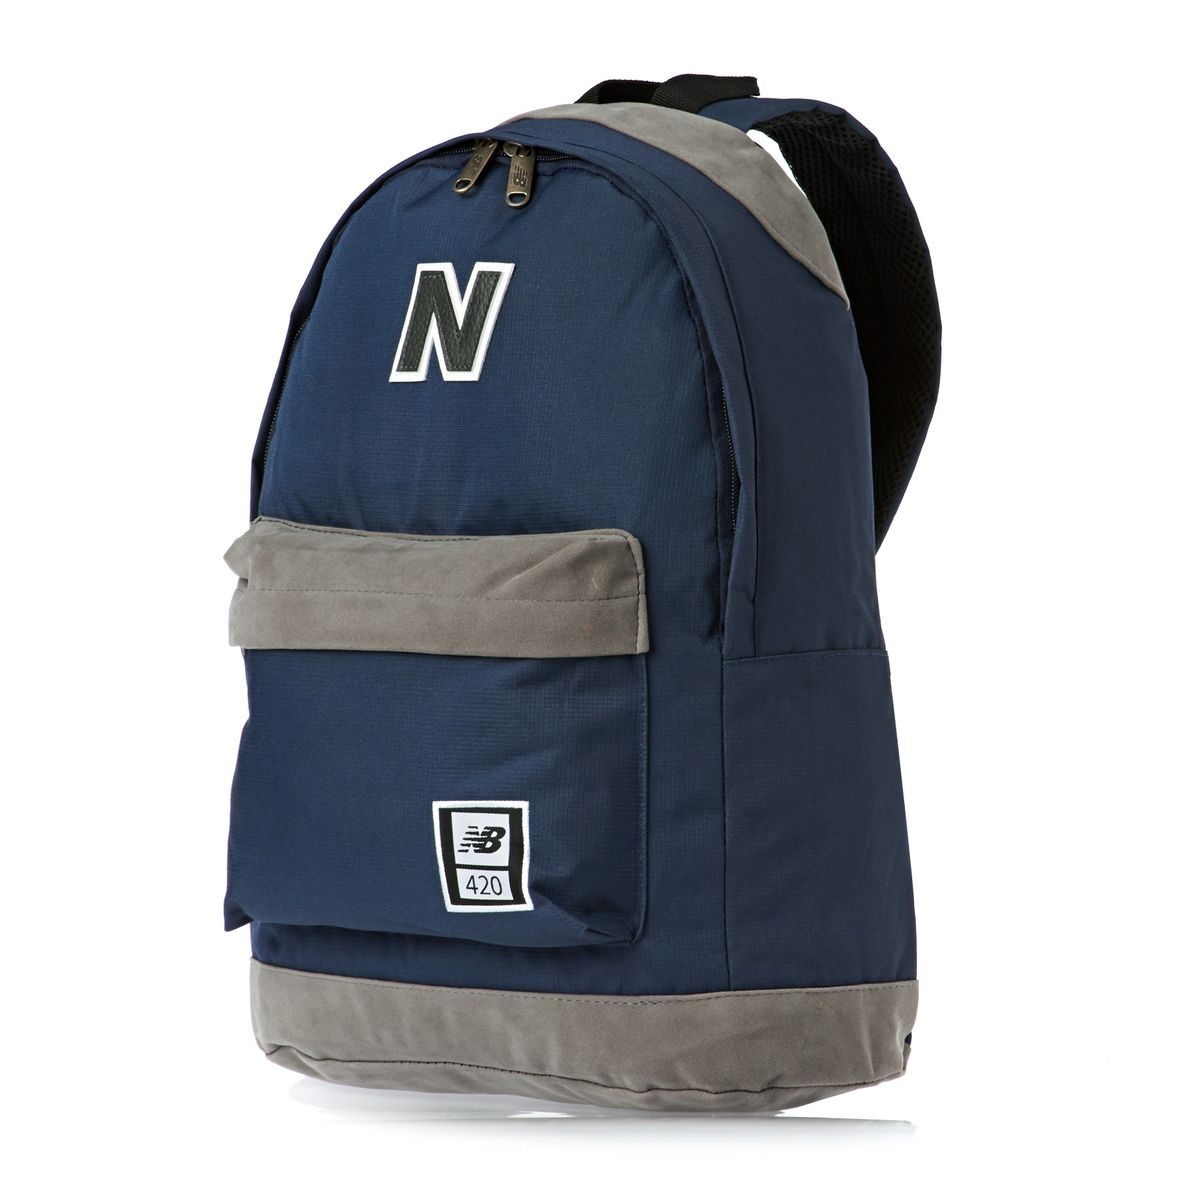 new-balance-backpacks-new-balance-420-backpack-navy-grey